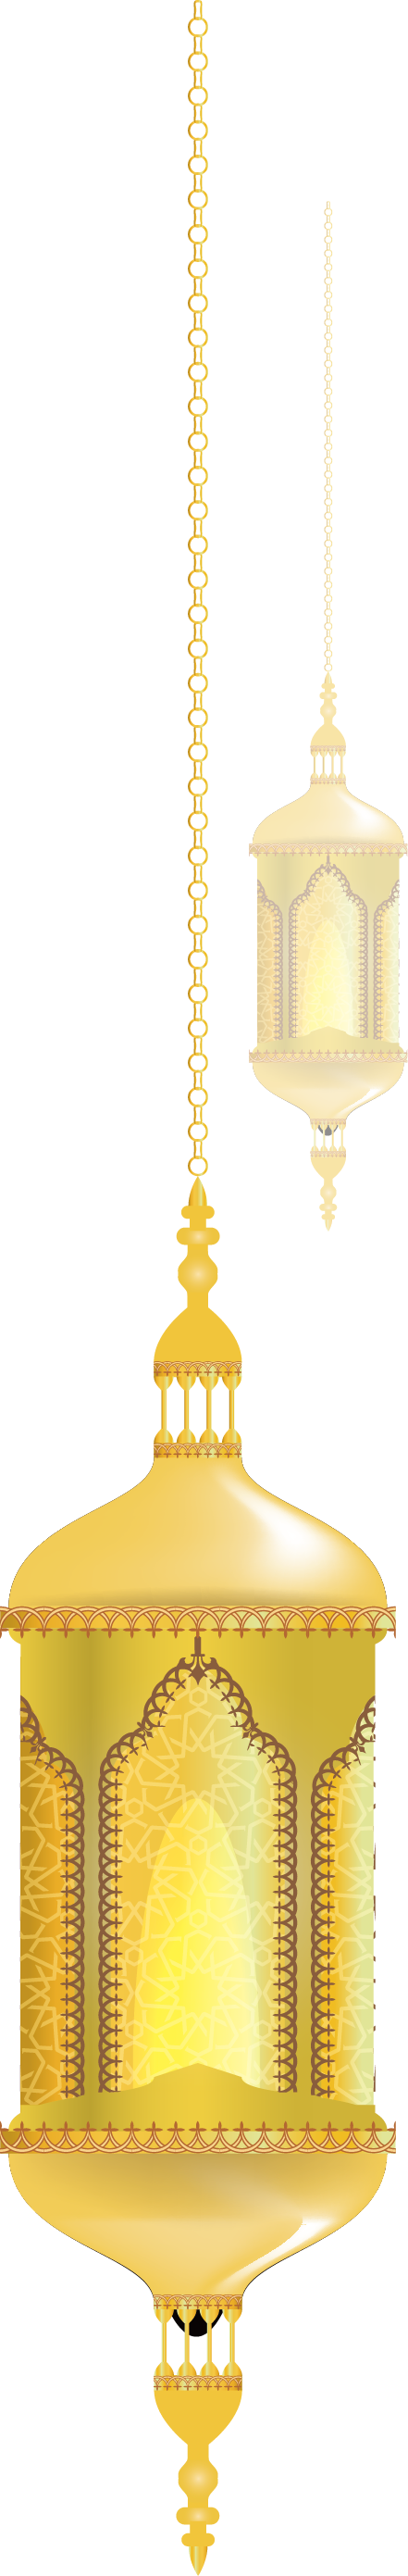 Golden Light Fixture Yellow Lights Vector Lighting PNG Image